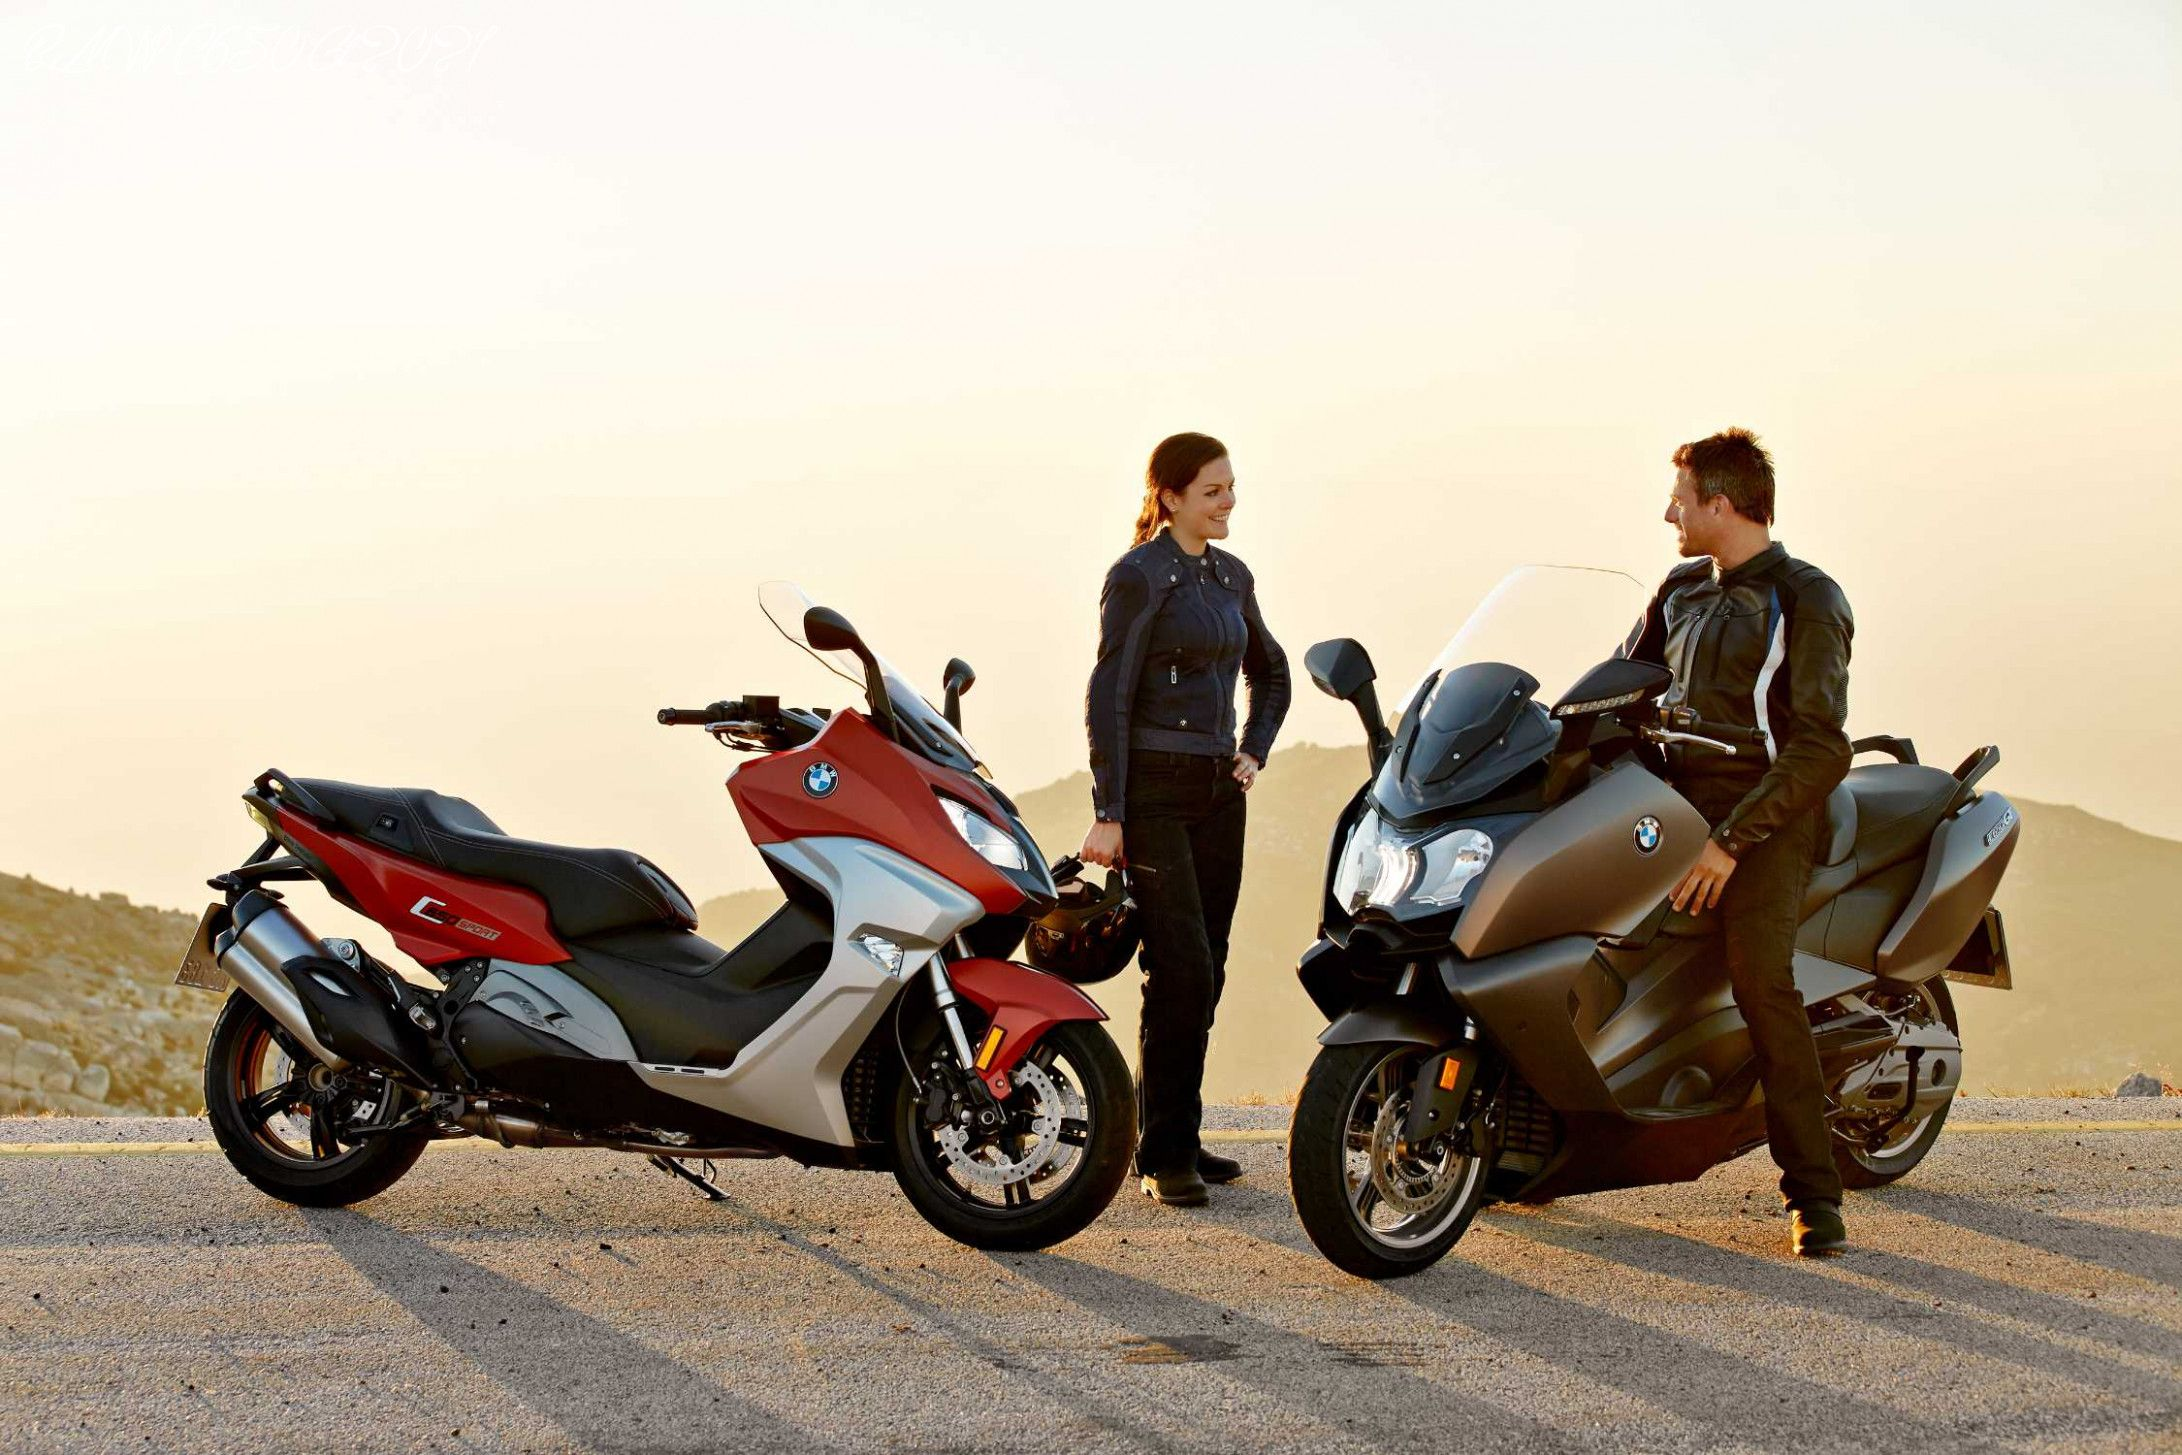 Bmw C650gt 2021 Price Design And Review In 2020 Scooter Bmw Bmw Motorrad